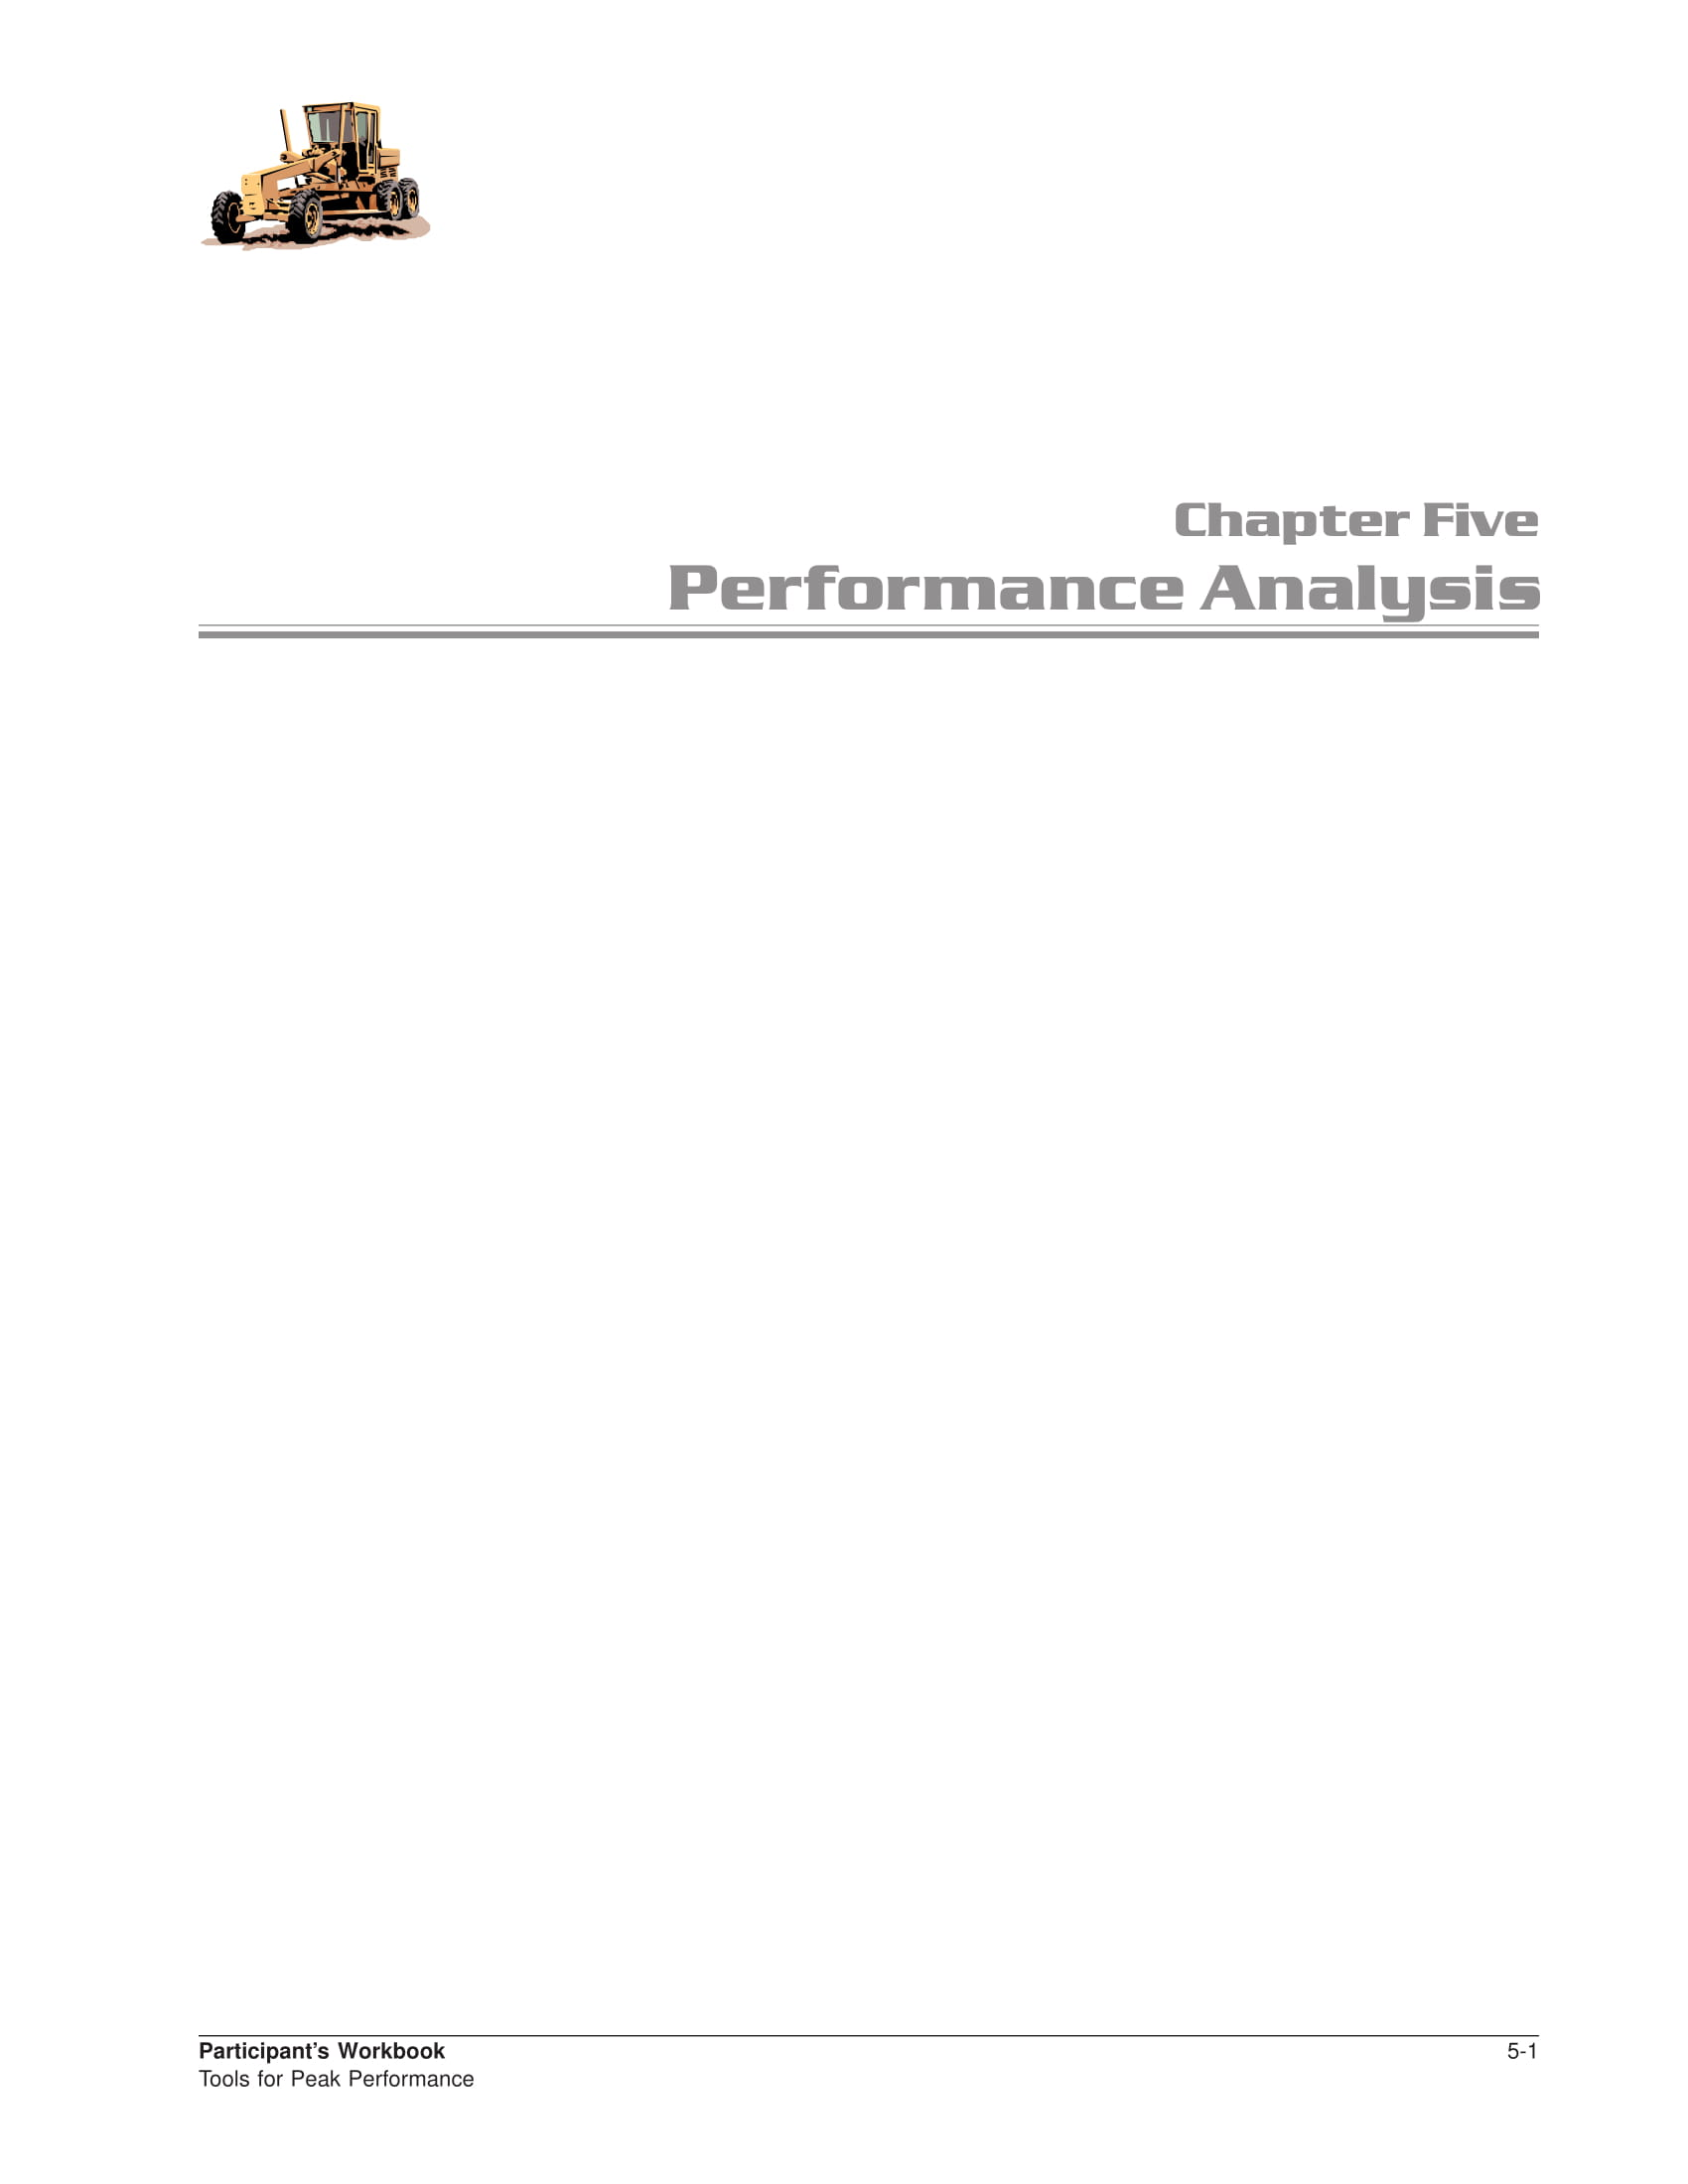 performance analysis report and guide example 01